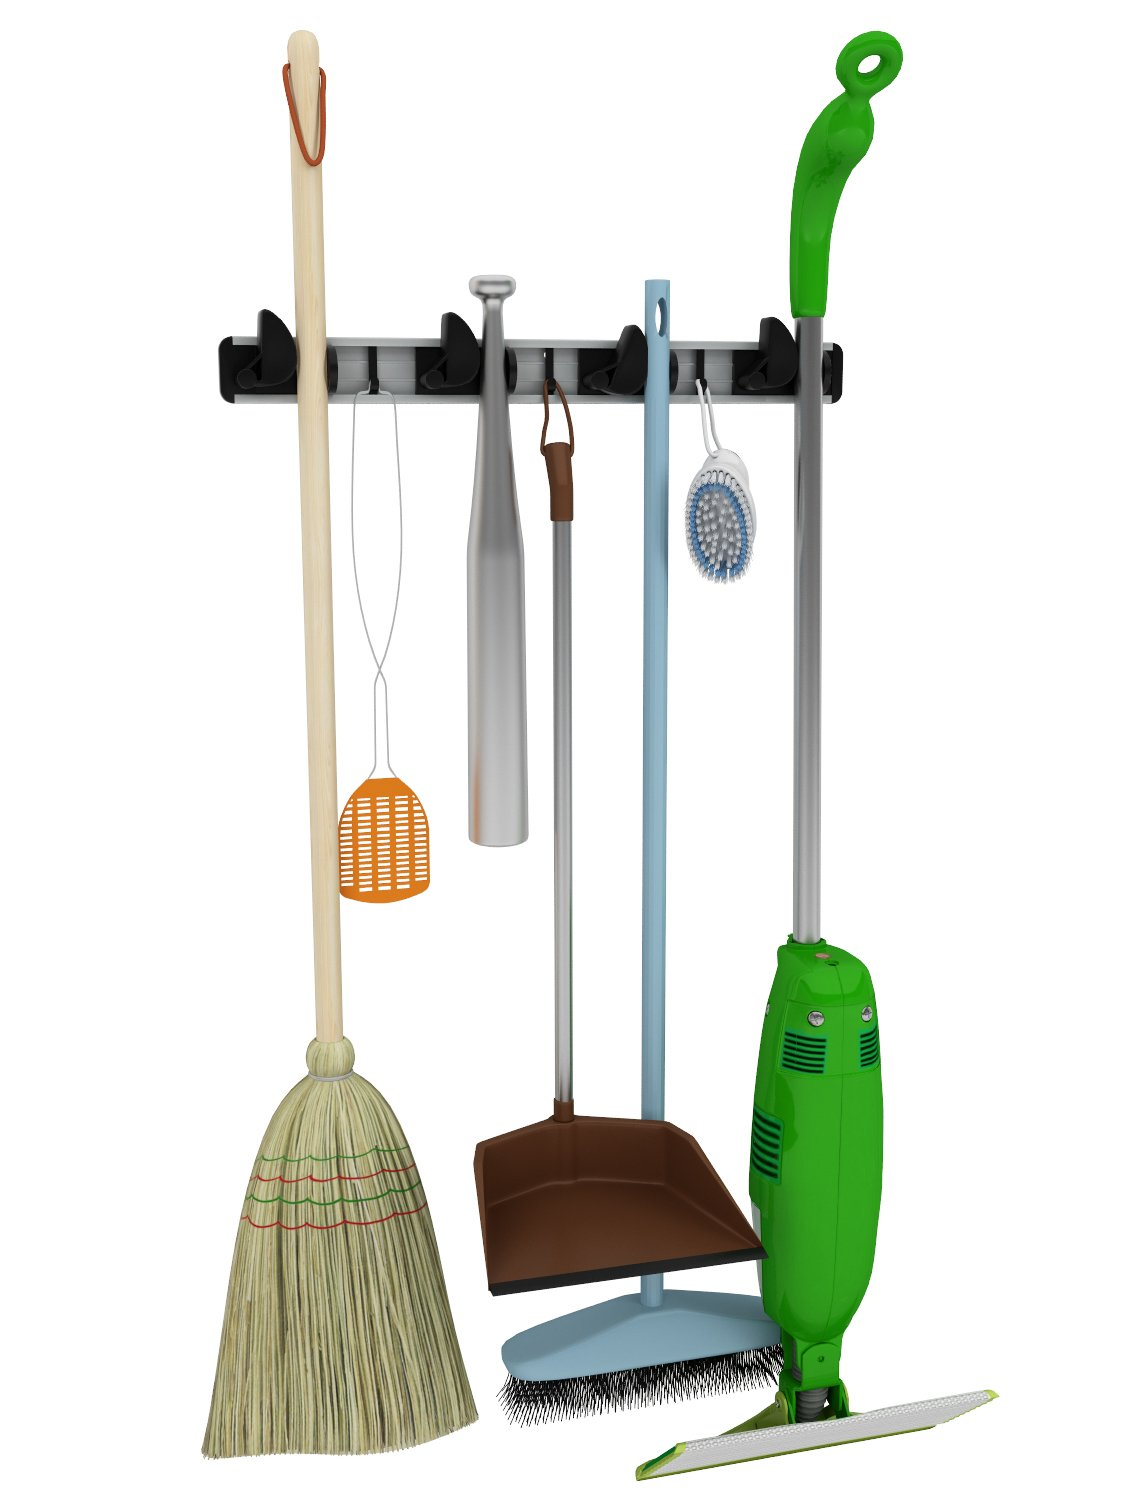 Renegade 20-Inch 4 Grip and 3 Hooks Mop, Broom and Tool Holder